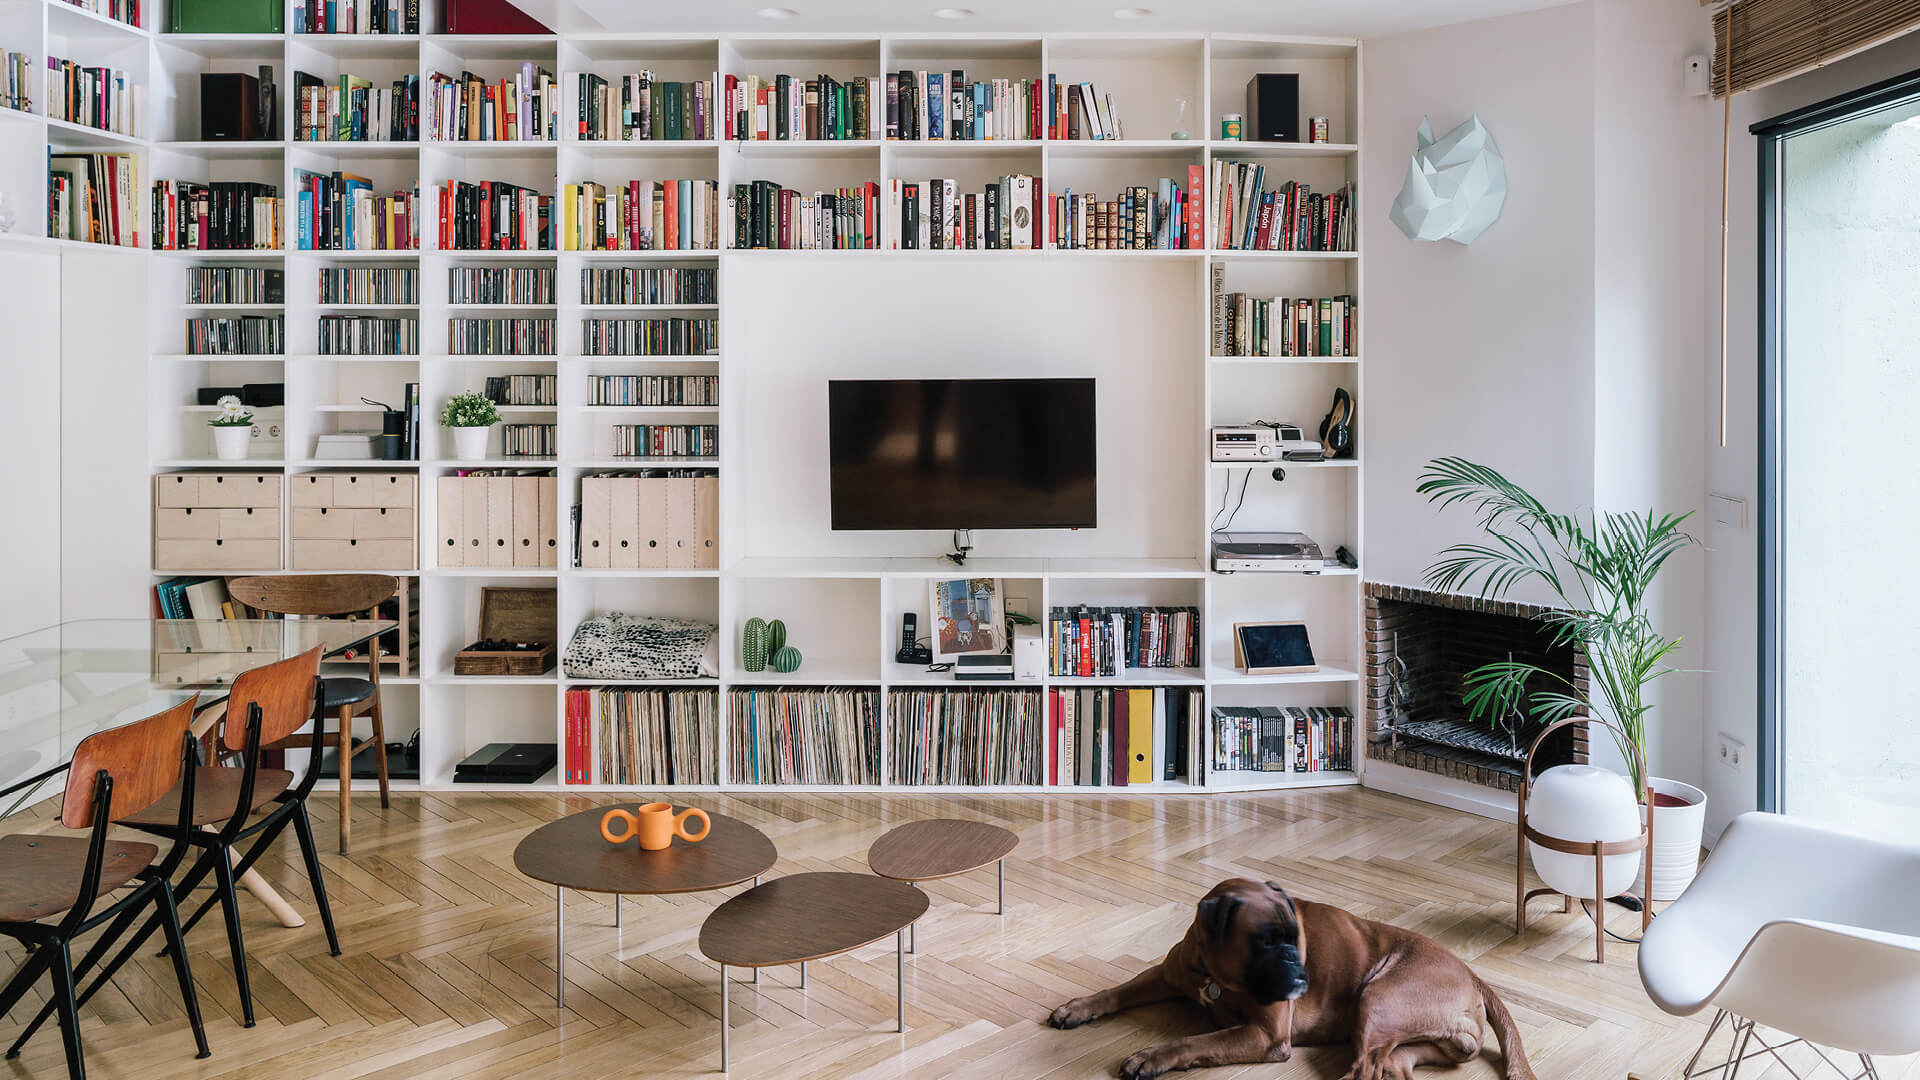 6House, a residential refurbishment project by Zooco Estudio in Madrid, Spain | 6House by Zoocoo Estudio | STIRworld